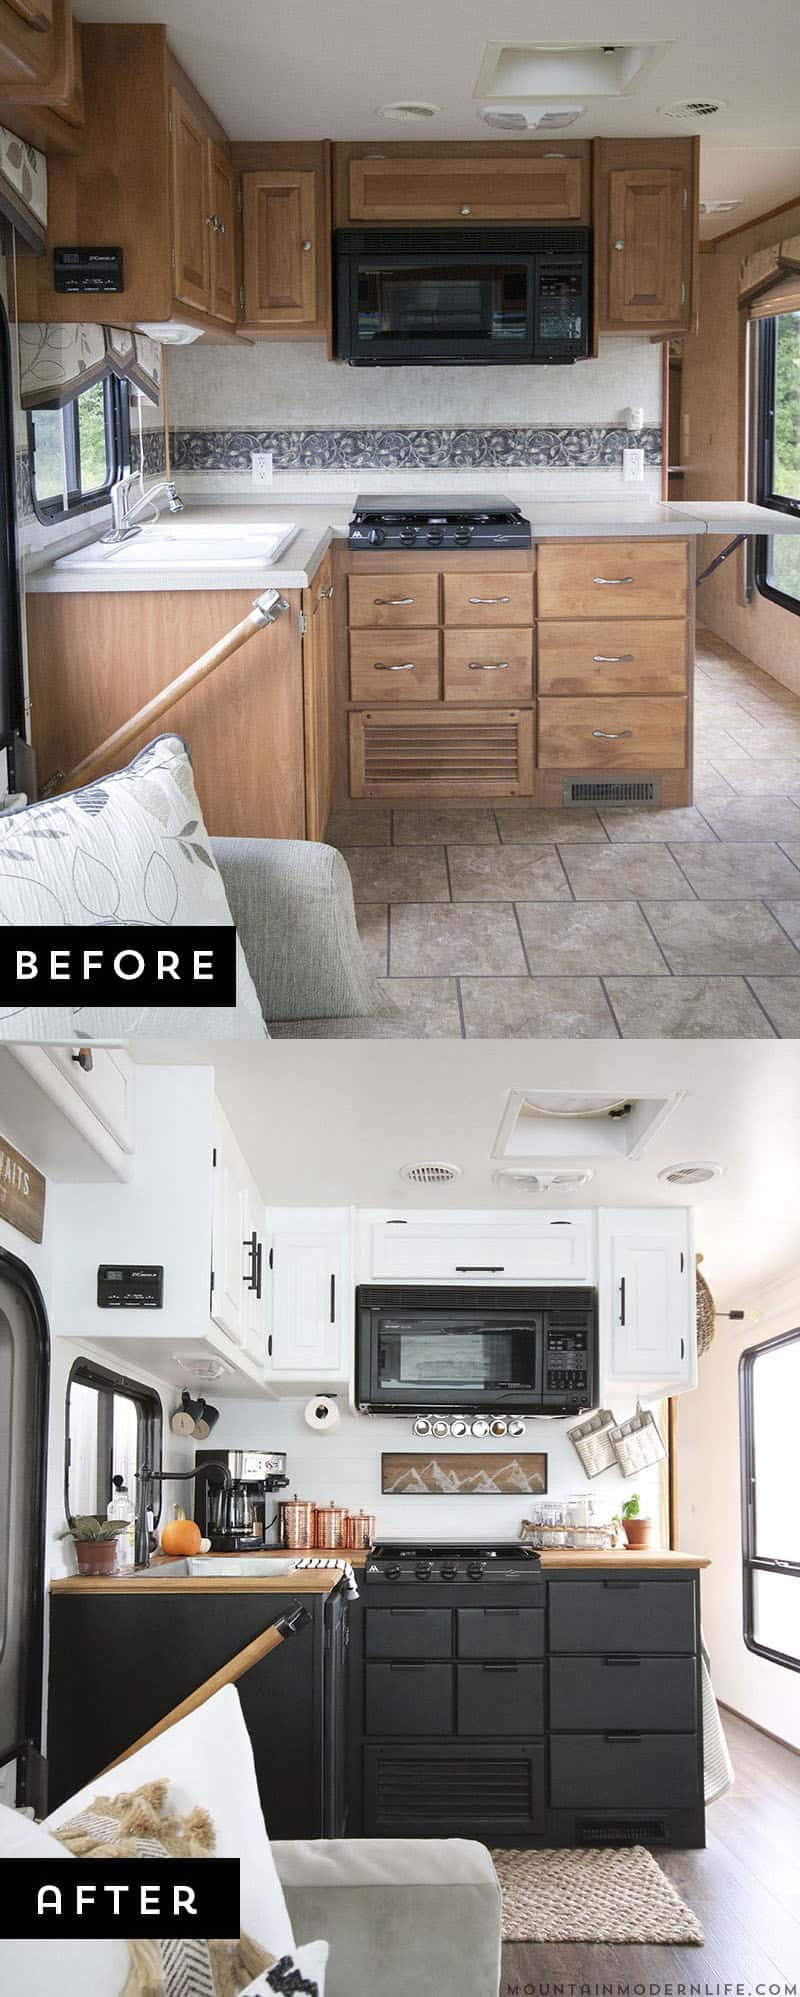 Http Mountainmodernlife Com Handscraped Ashen Oak Nucore Flooring Installed Inside Motorhome Mountainmodernlife Com